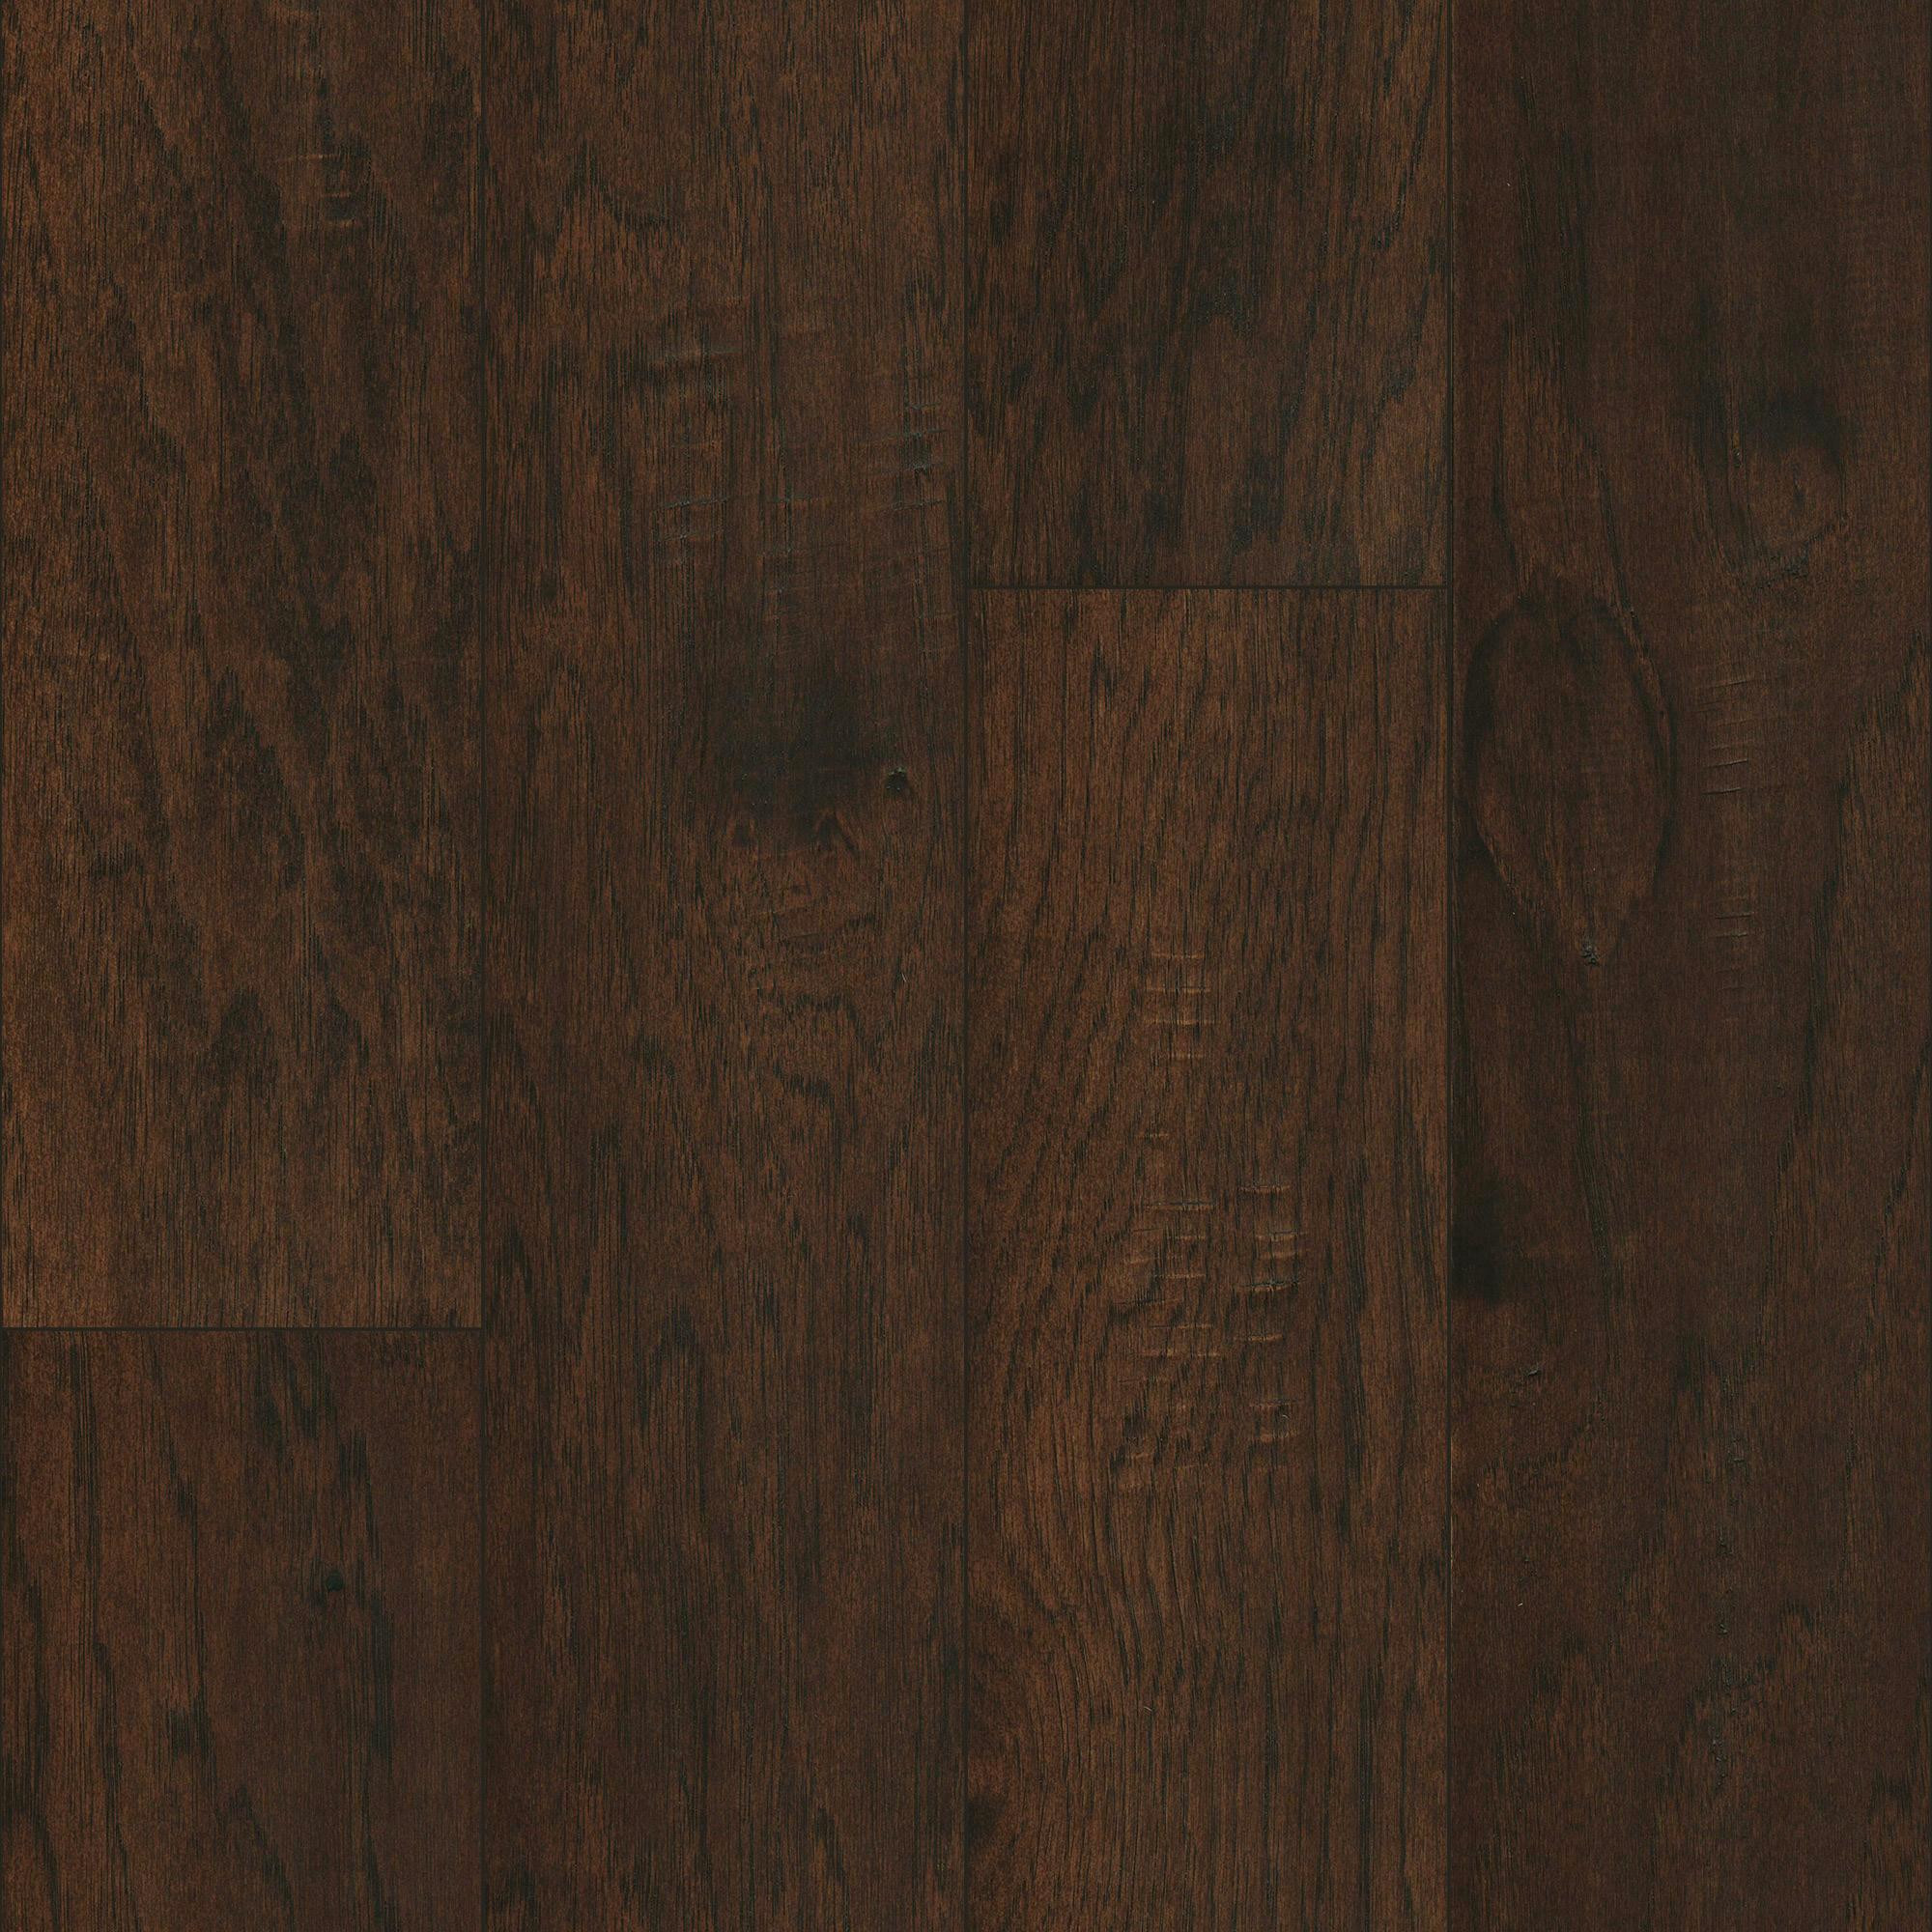 can bruce engineered hardwood floors be refinished of eldorado hickory saddle bruce style hardwood throughout eldorado hickory saddle bruce style 6 5 wide 1 2 thick hand scraped hardwood